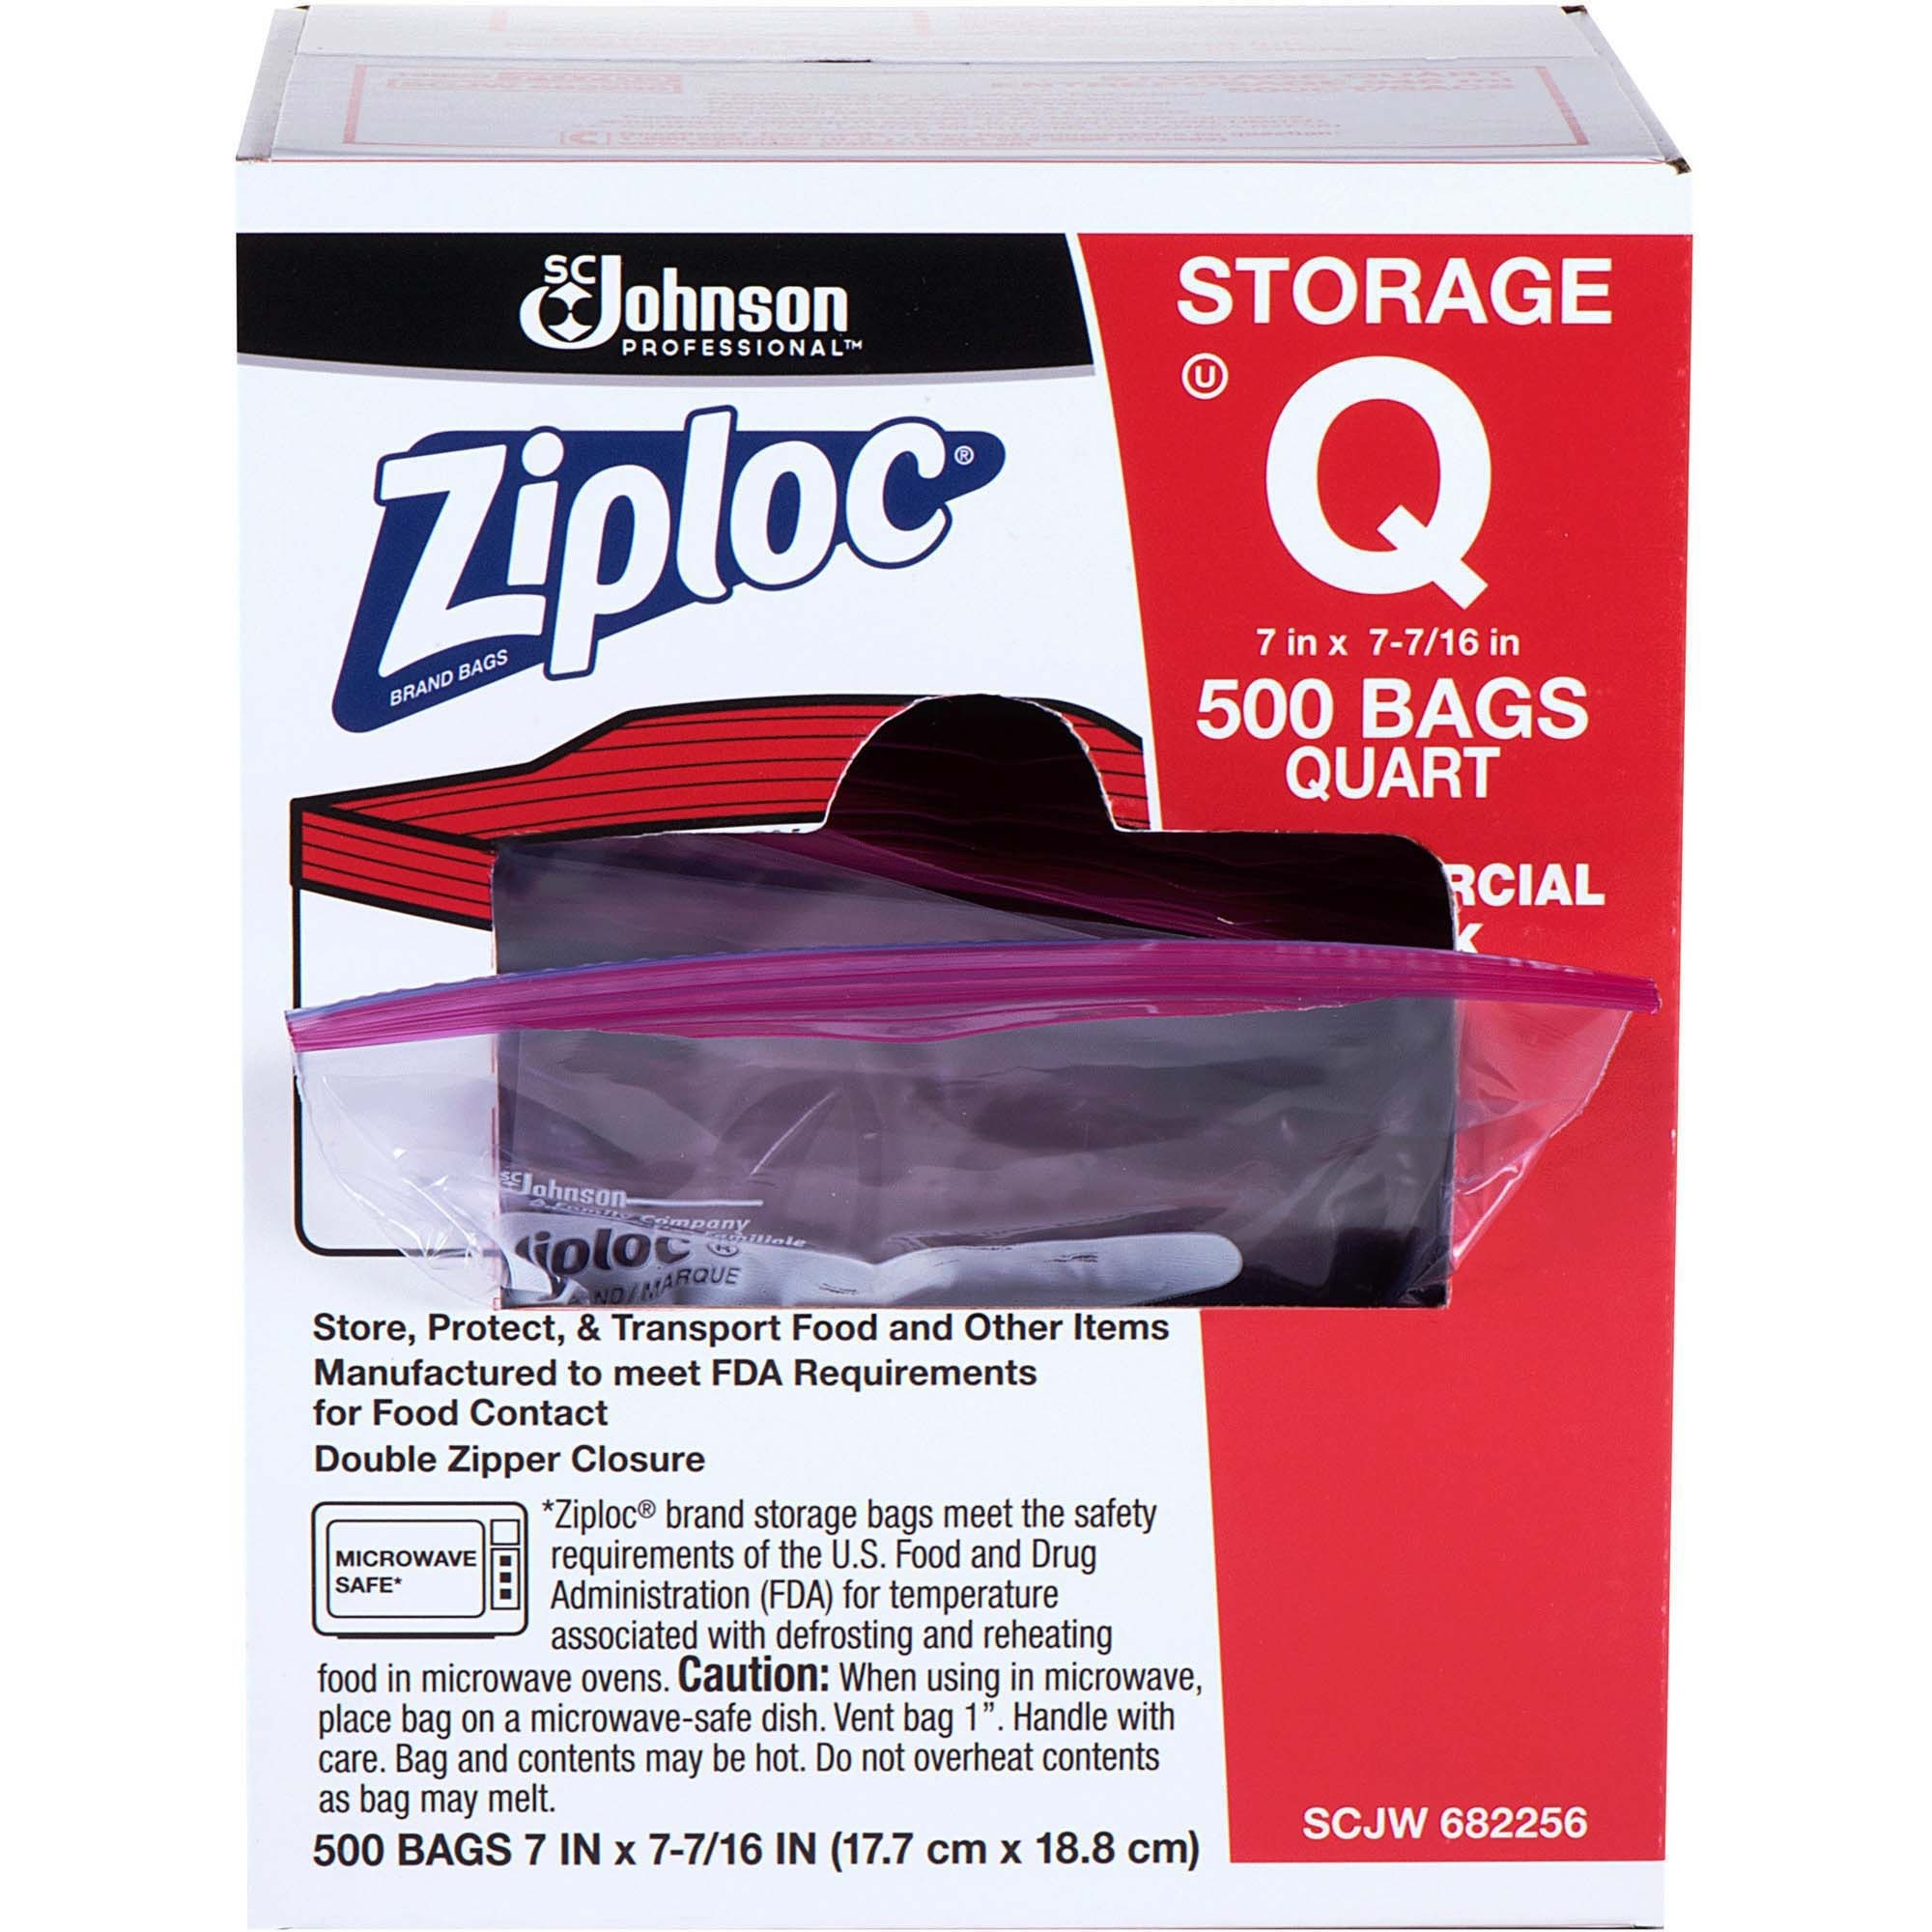 Power surge technologies ltd cleaning breakroom breakroom ziploc quart storage bags medium size 94635 ml 7 17780 mm width x 744 18891 mm depth 175 mil 44 micron thickness clear plastic reheart Image collections